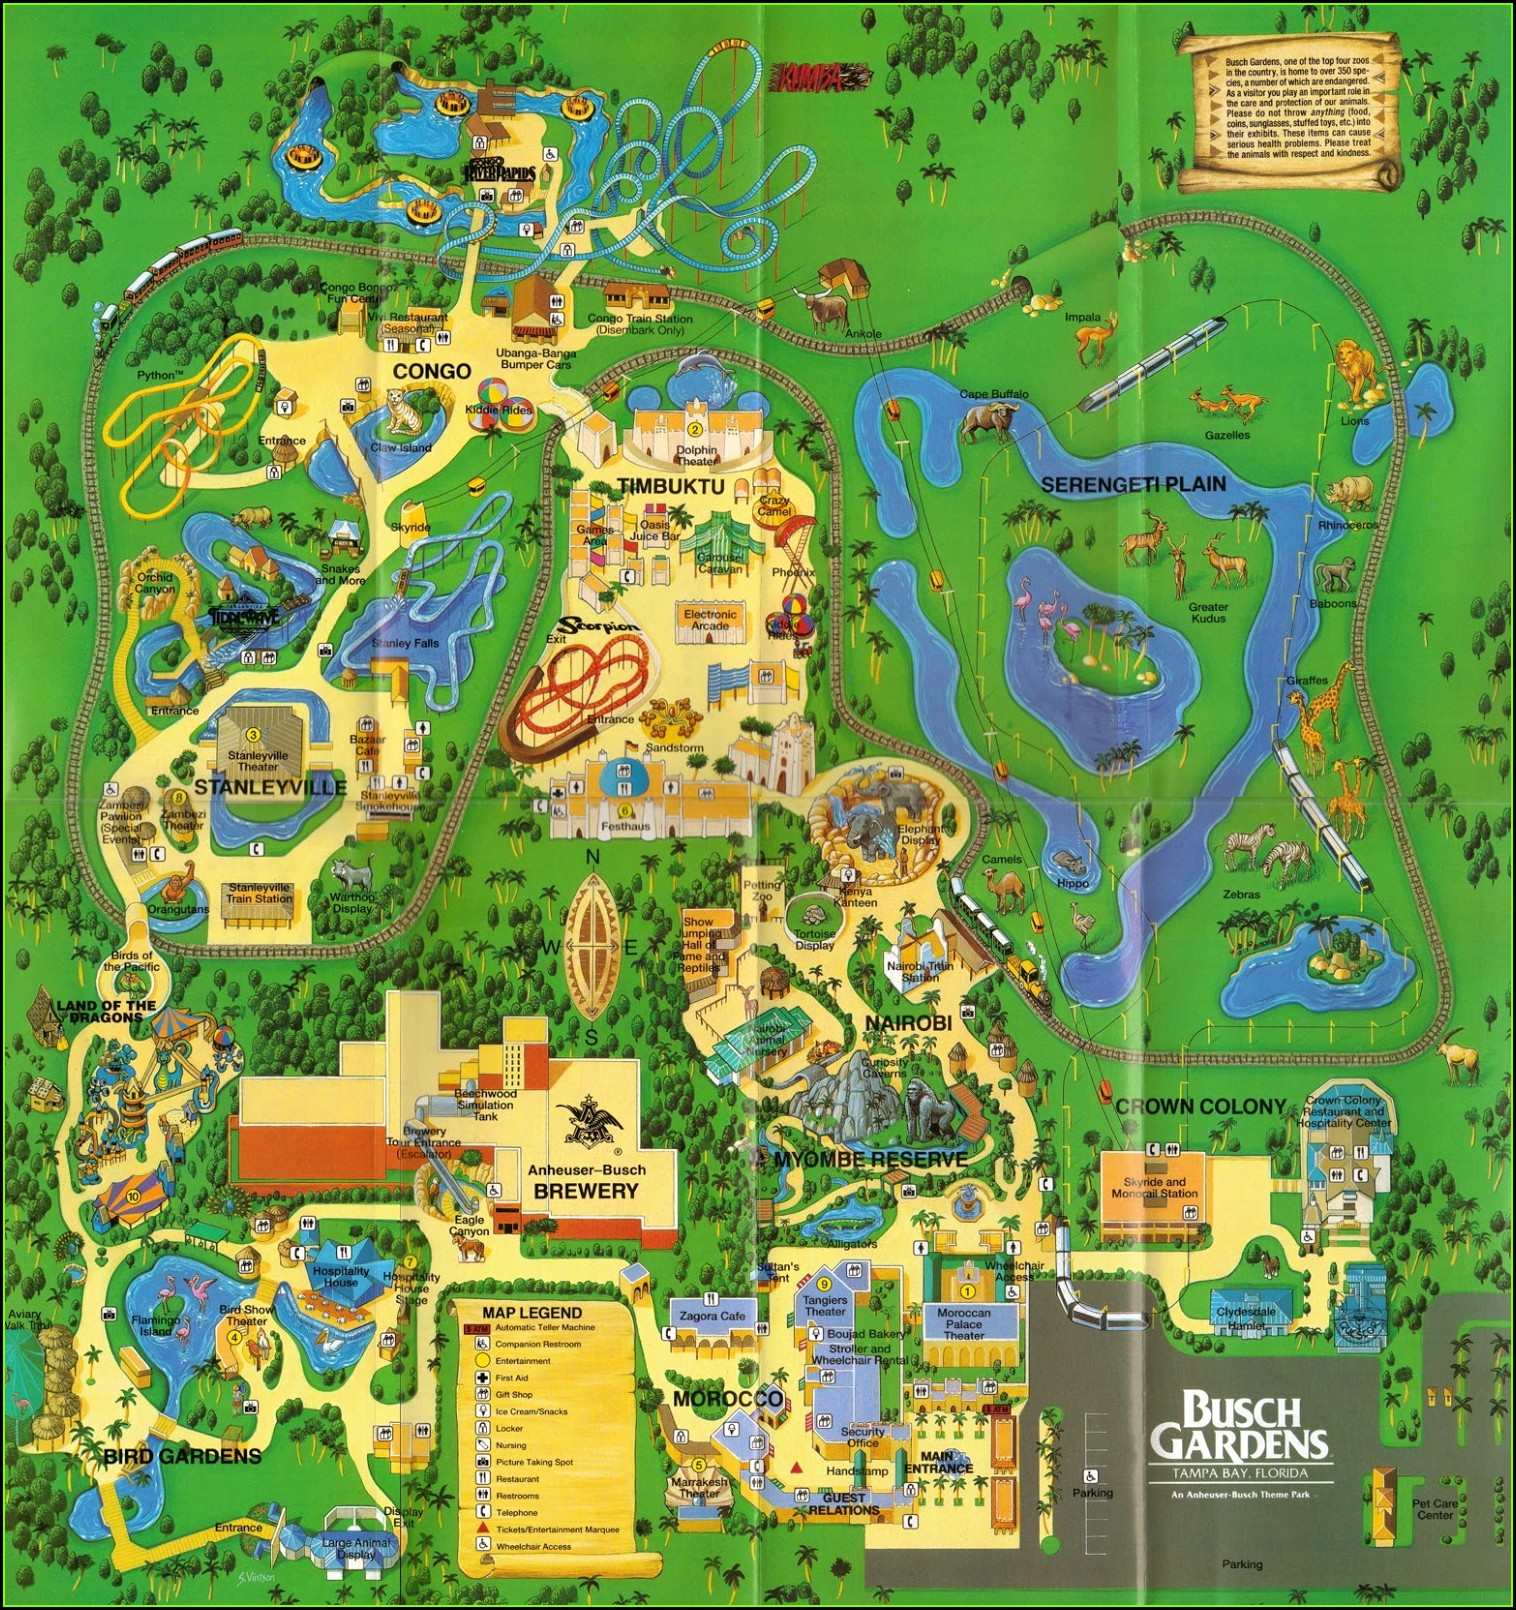 Old Busch Gardens Williamsburg Map